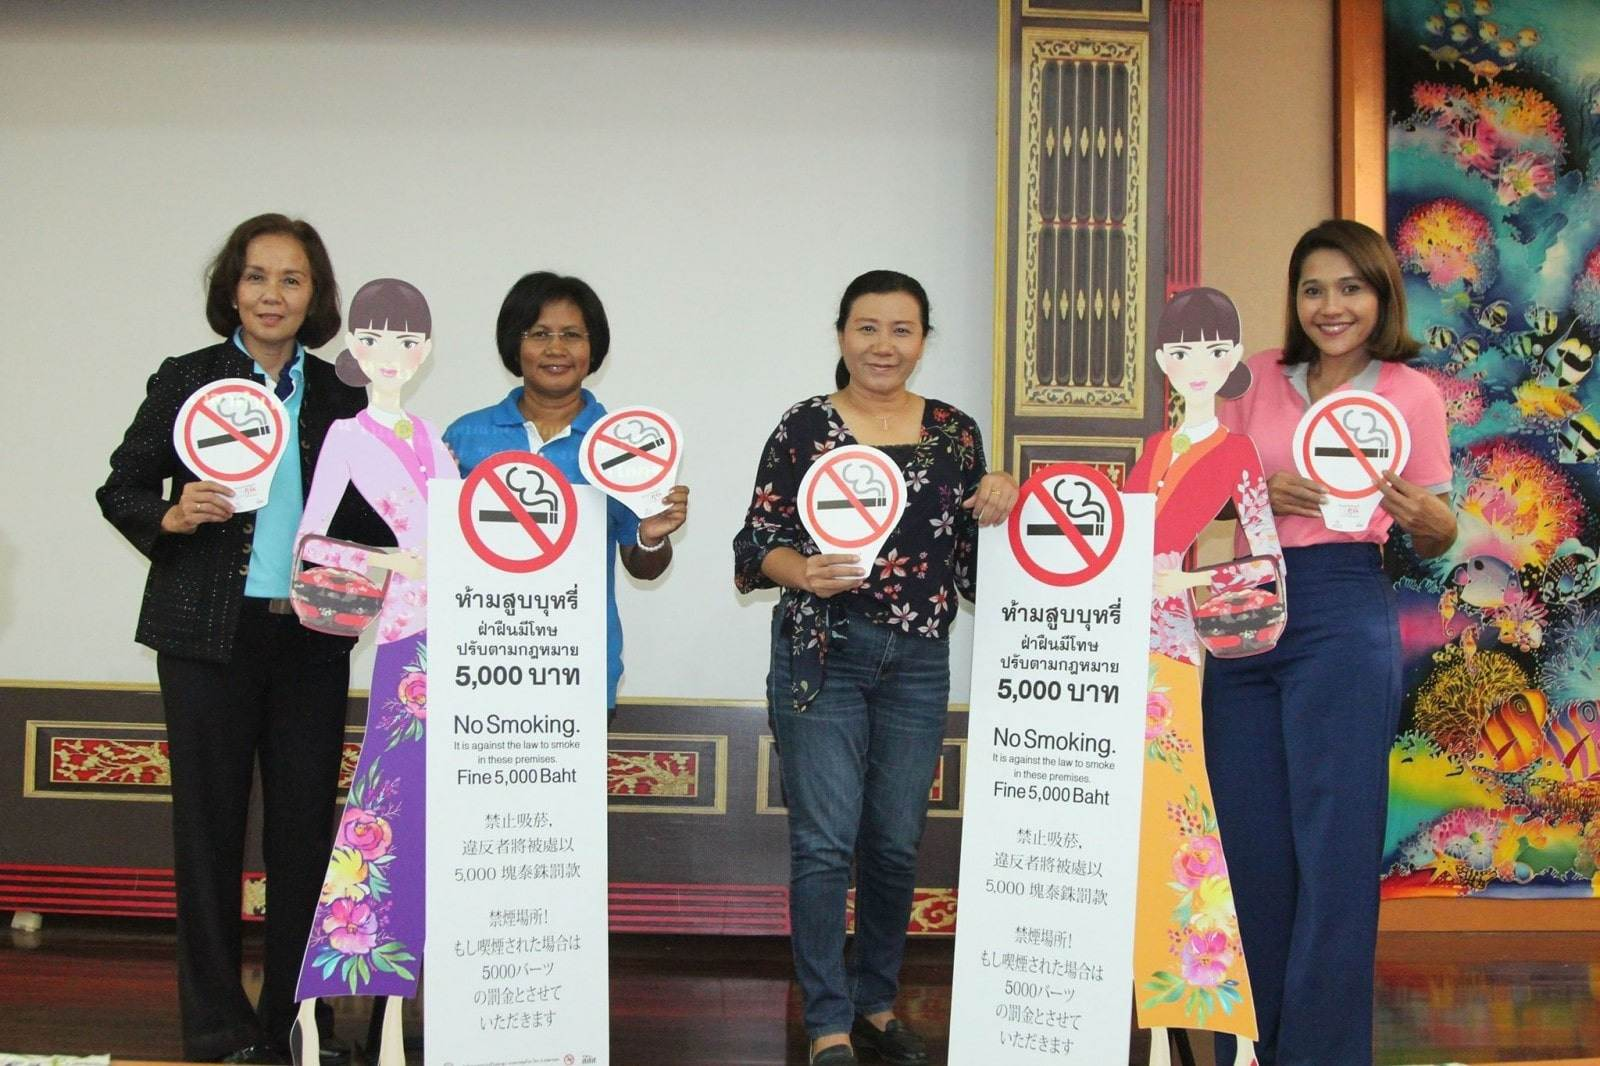 Old Phuket Town Sunday market launches no-smoking campaign | The Thaiger